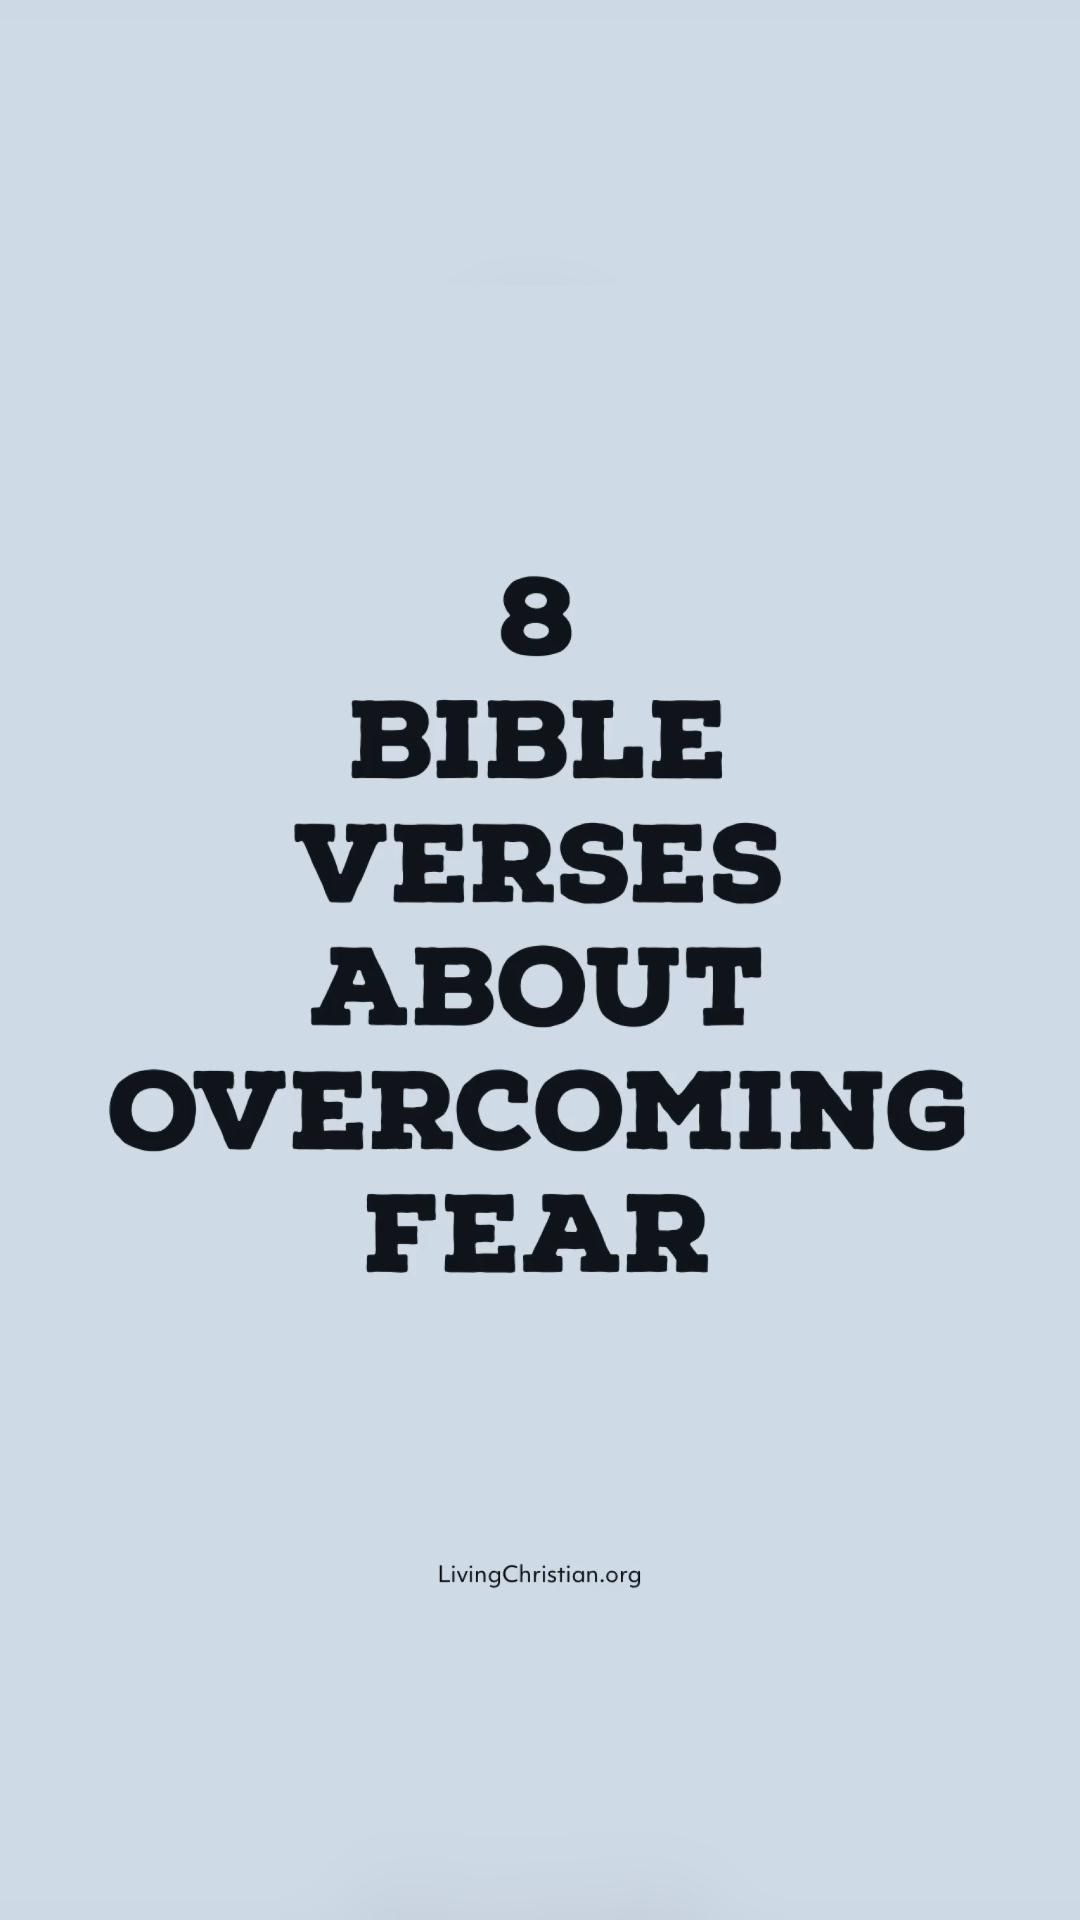 Bible Verses About Overcoming Fear